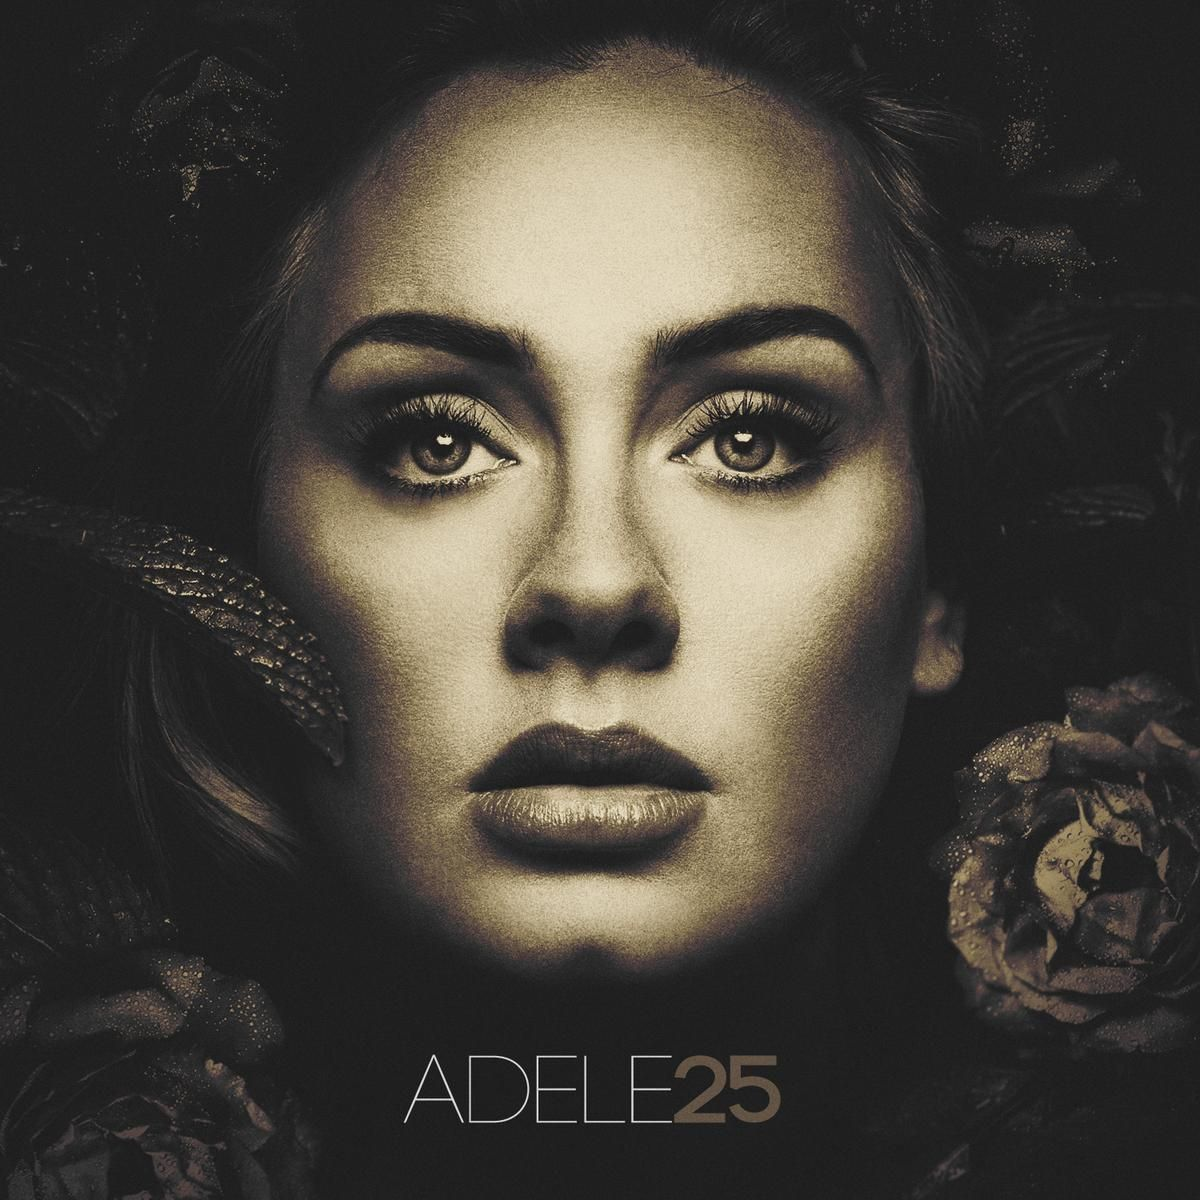 25 Adele: Adele - 25 (Special Holiday Edition)